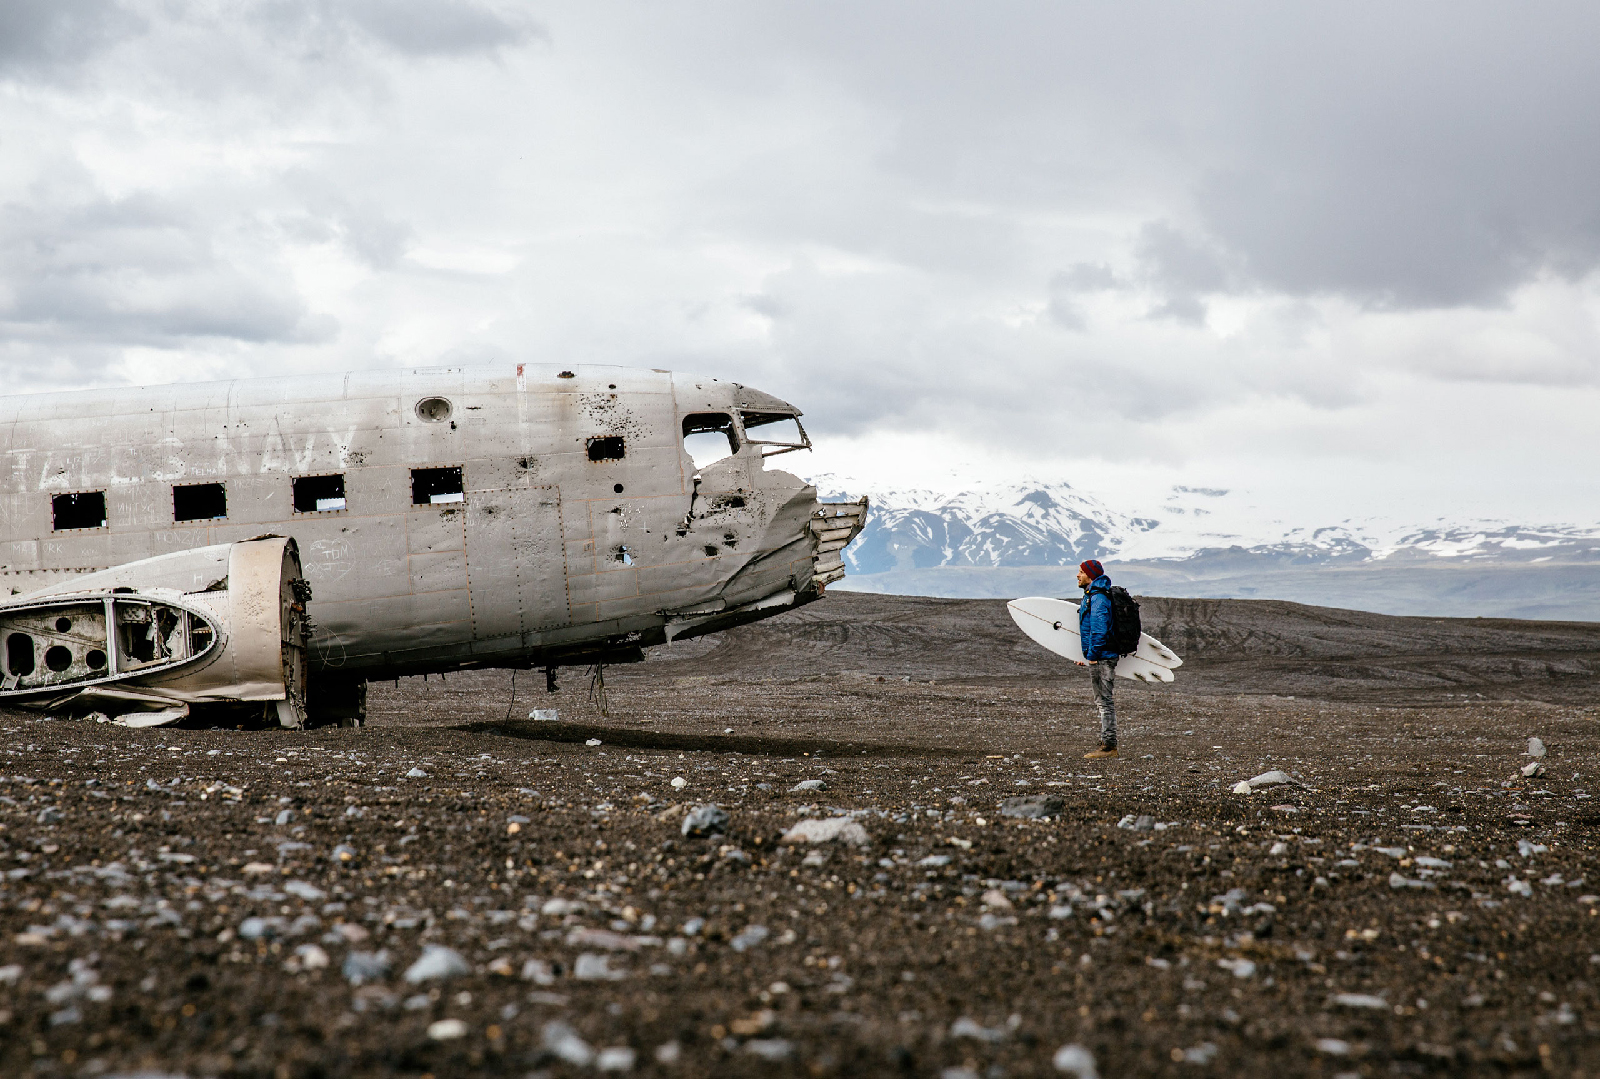 p7_the_great_wide_open_james_bowden_iceland_yatzer